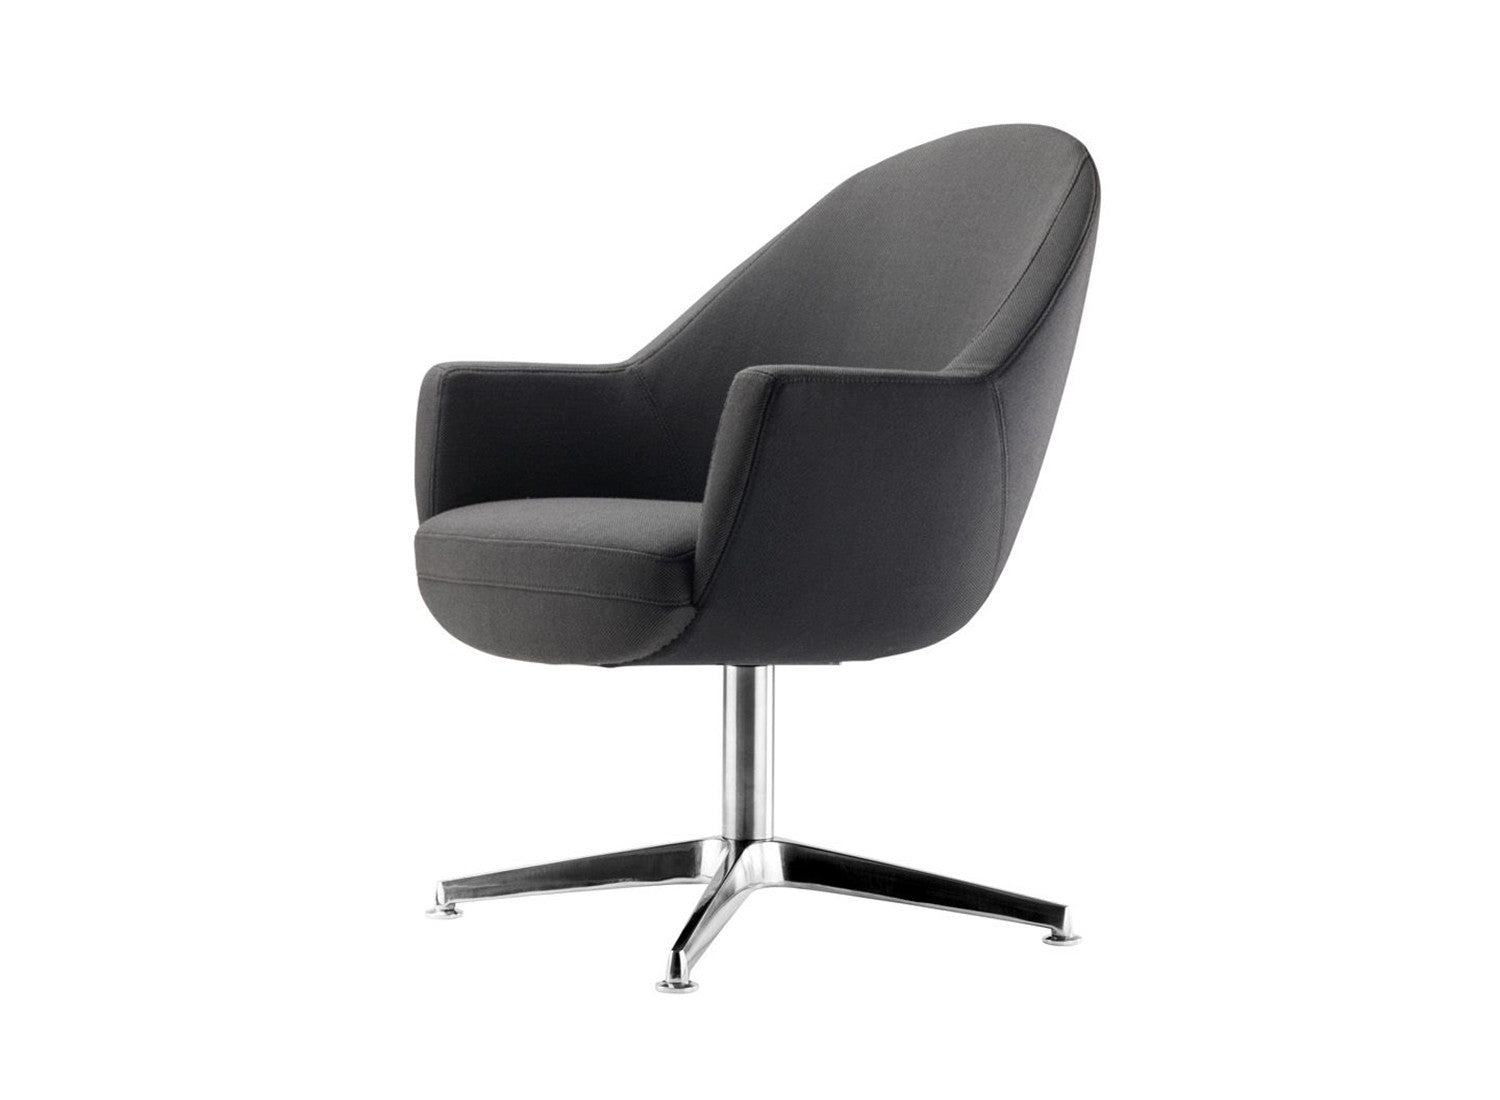 S 833 Swivel Chair